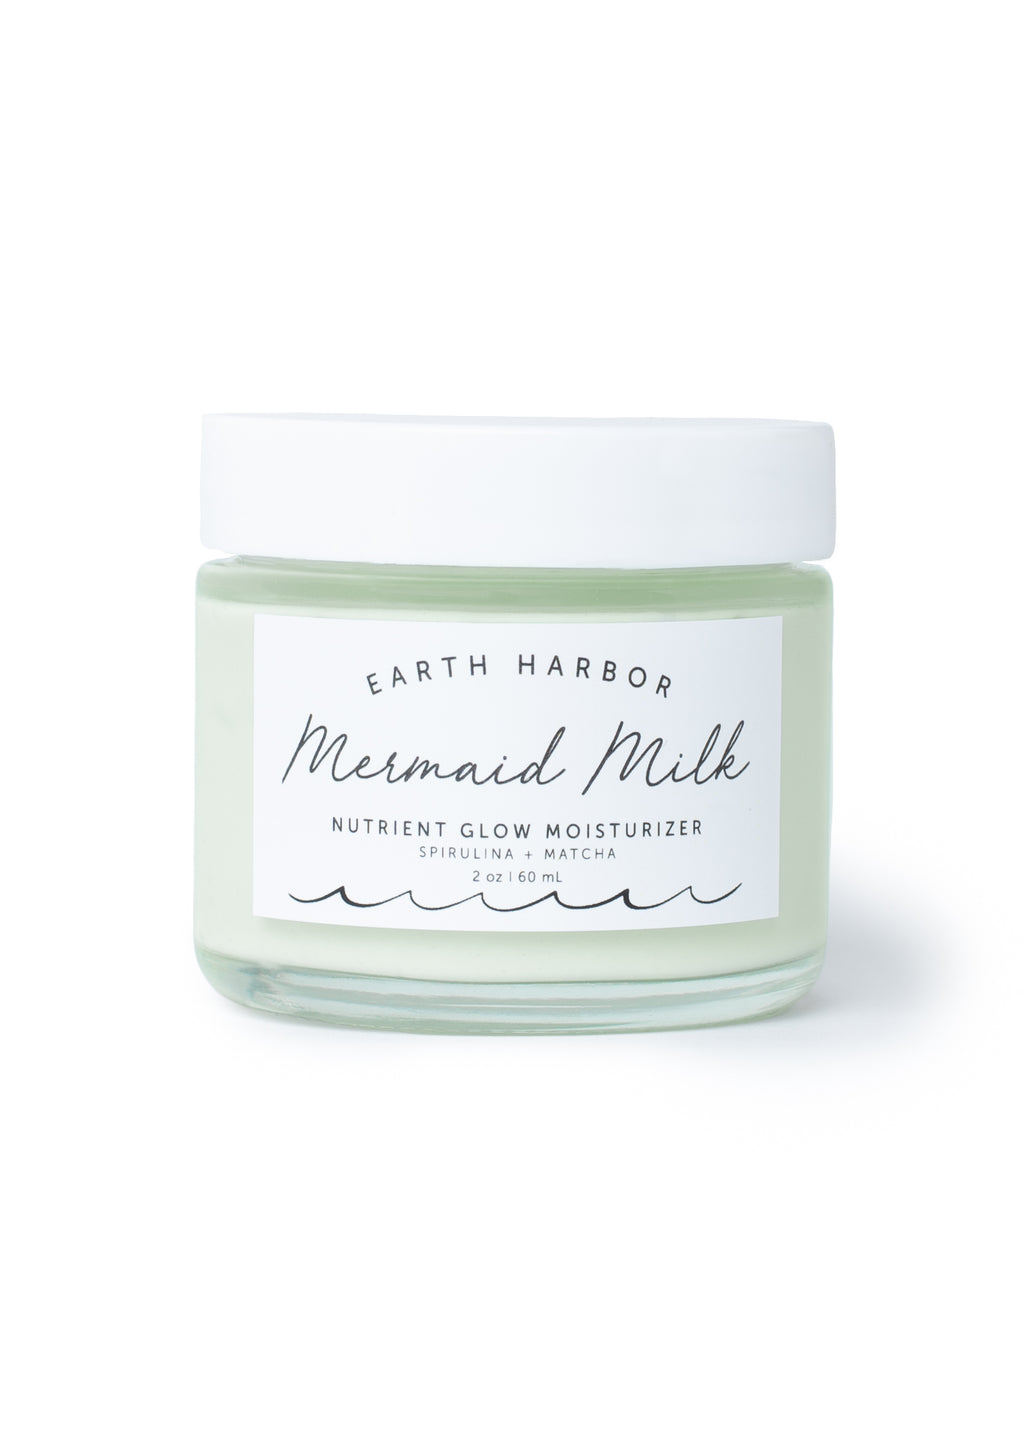 Mermaid Milk Superfood Moisturizer: Matcha + Spirulina - Briseis Beauty